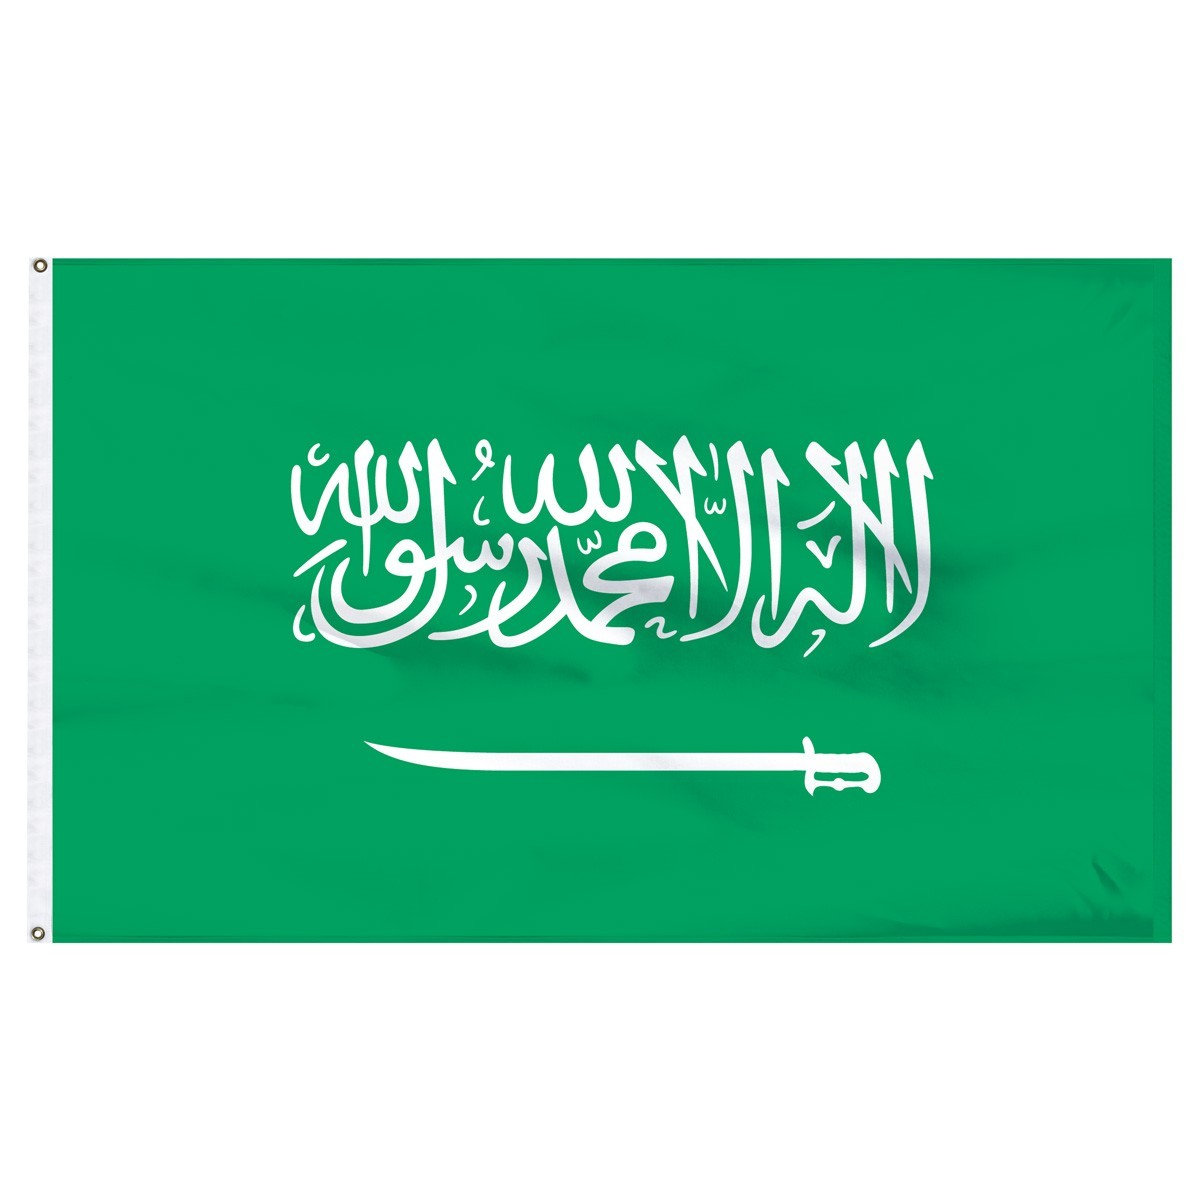 Saudi Arabia 2' x 3' Outdoor Nylon Flag